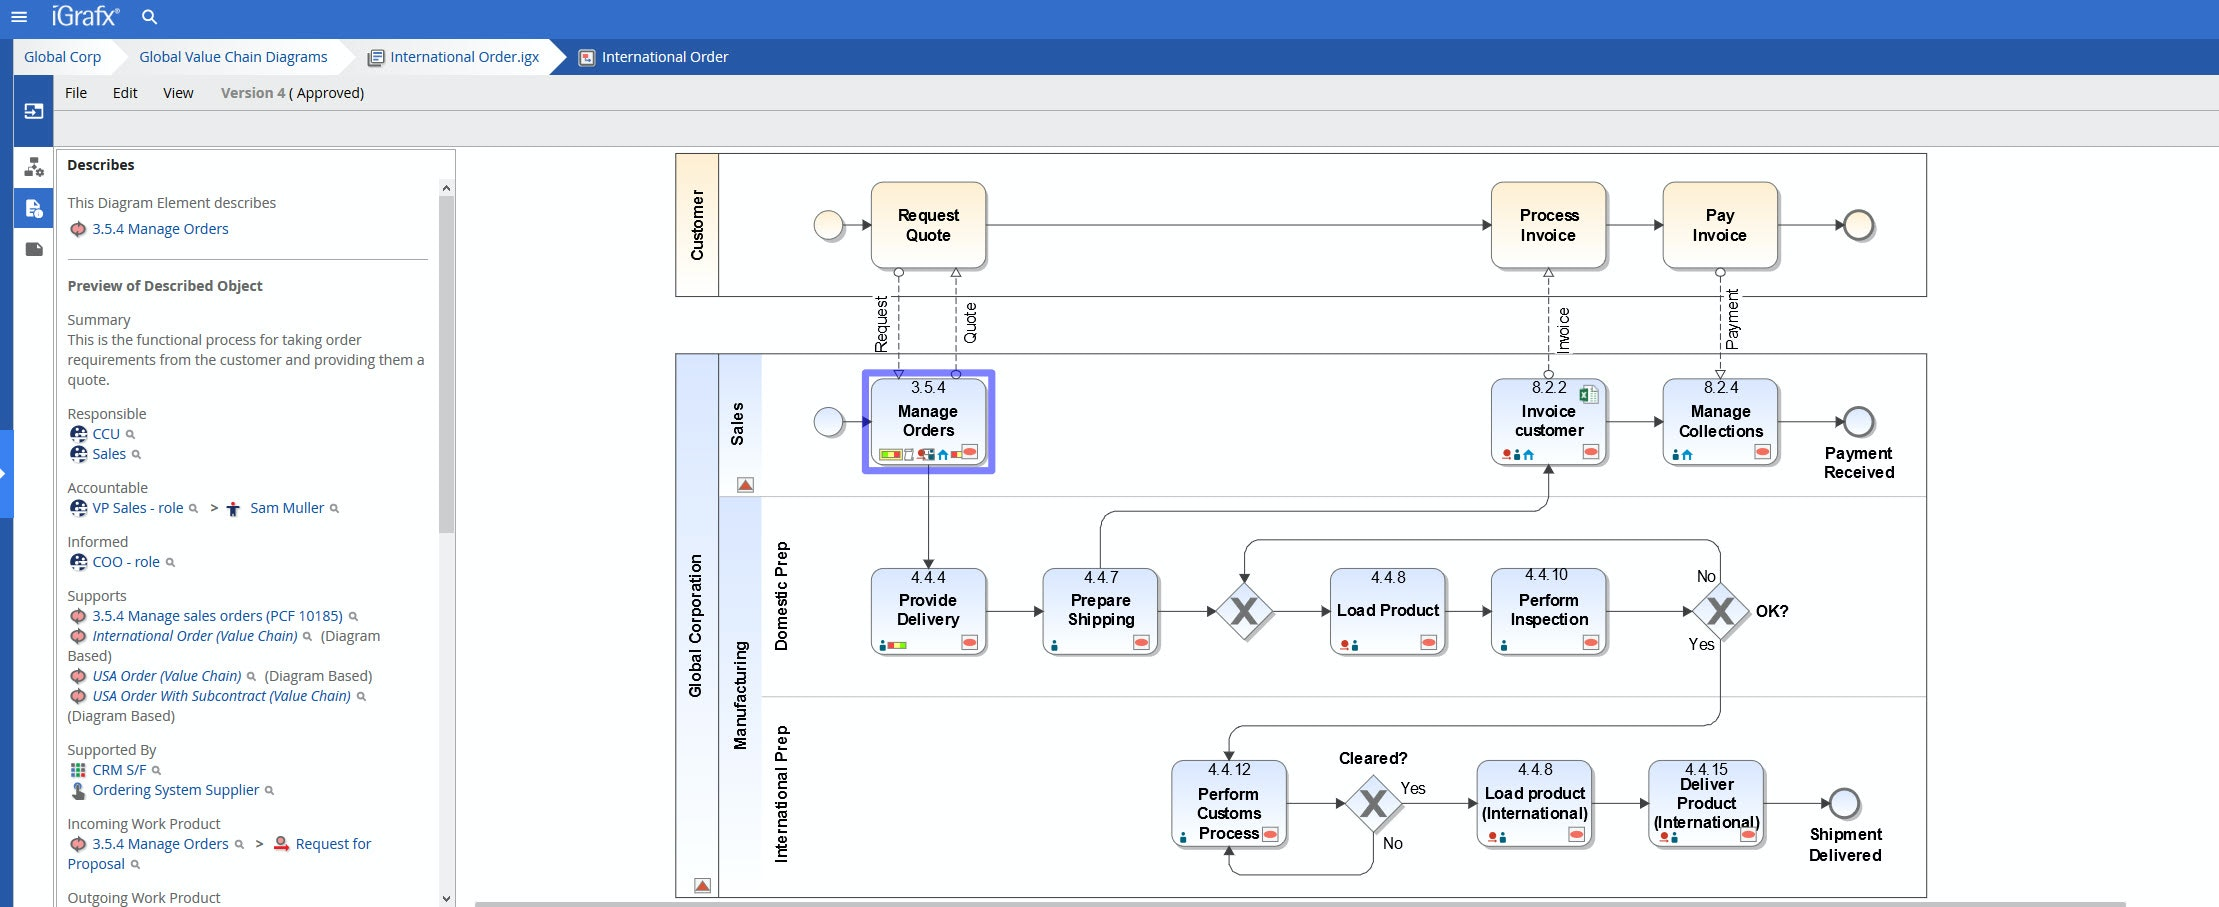 Workflow charting